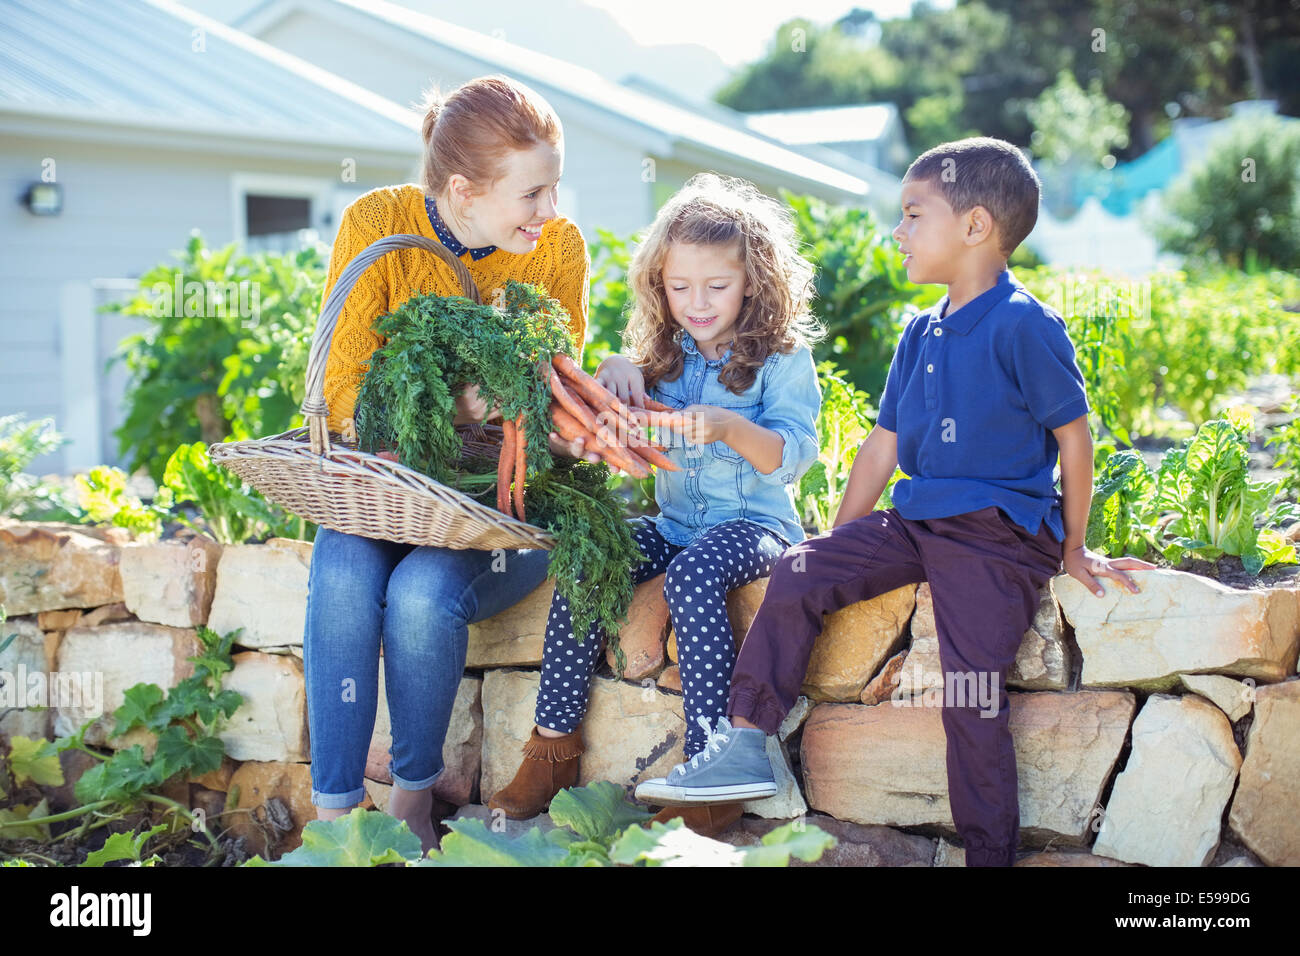 Teacher and students in vegetable garden - Stock Image